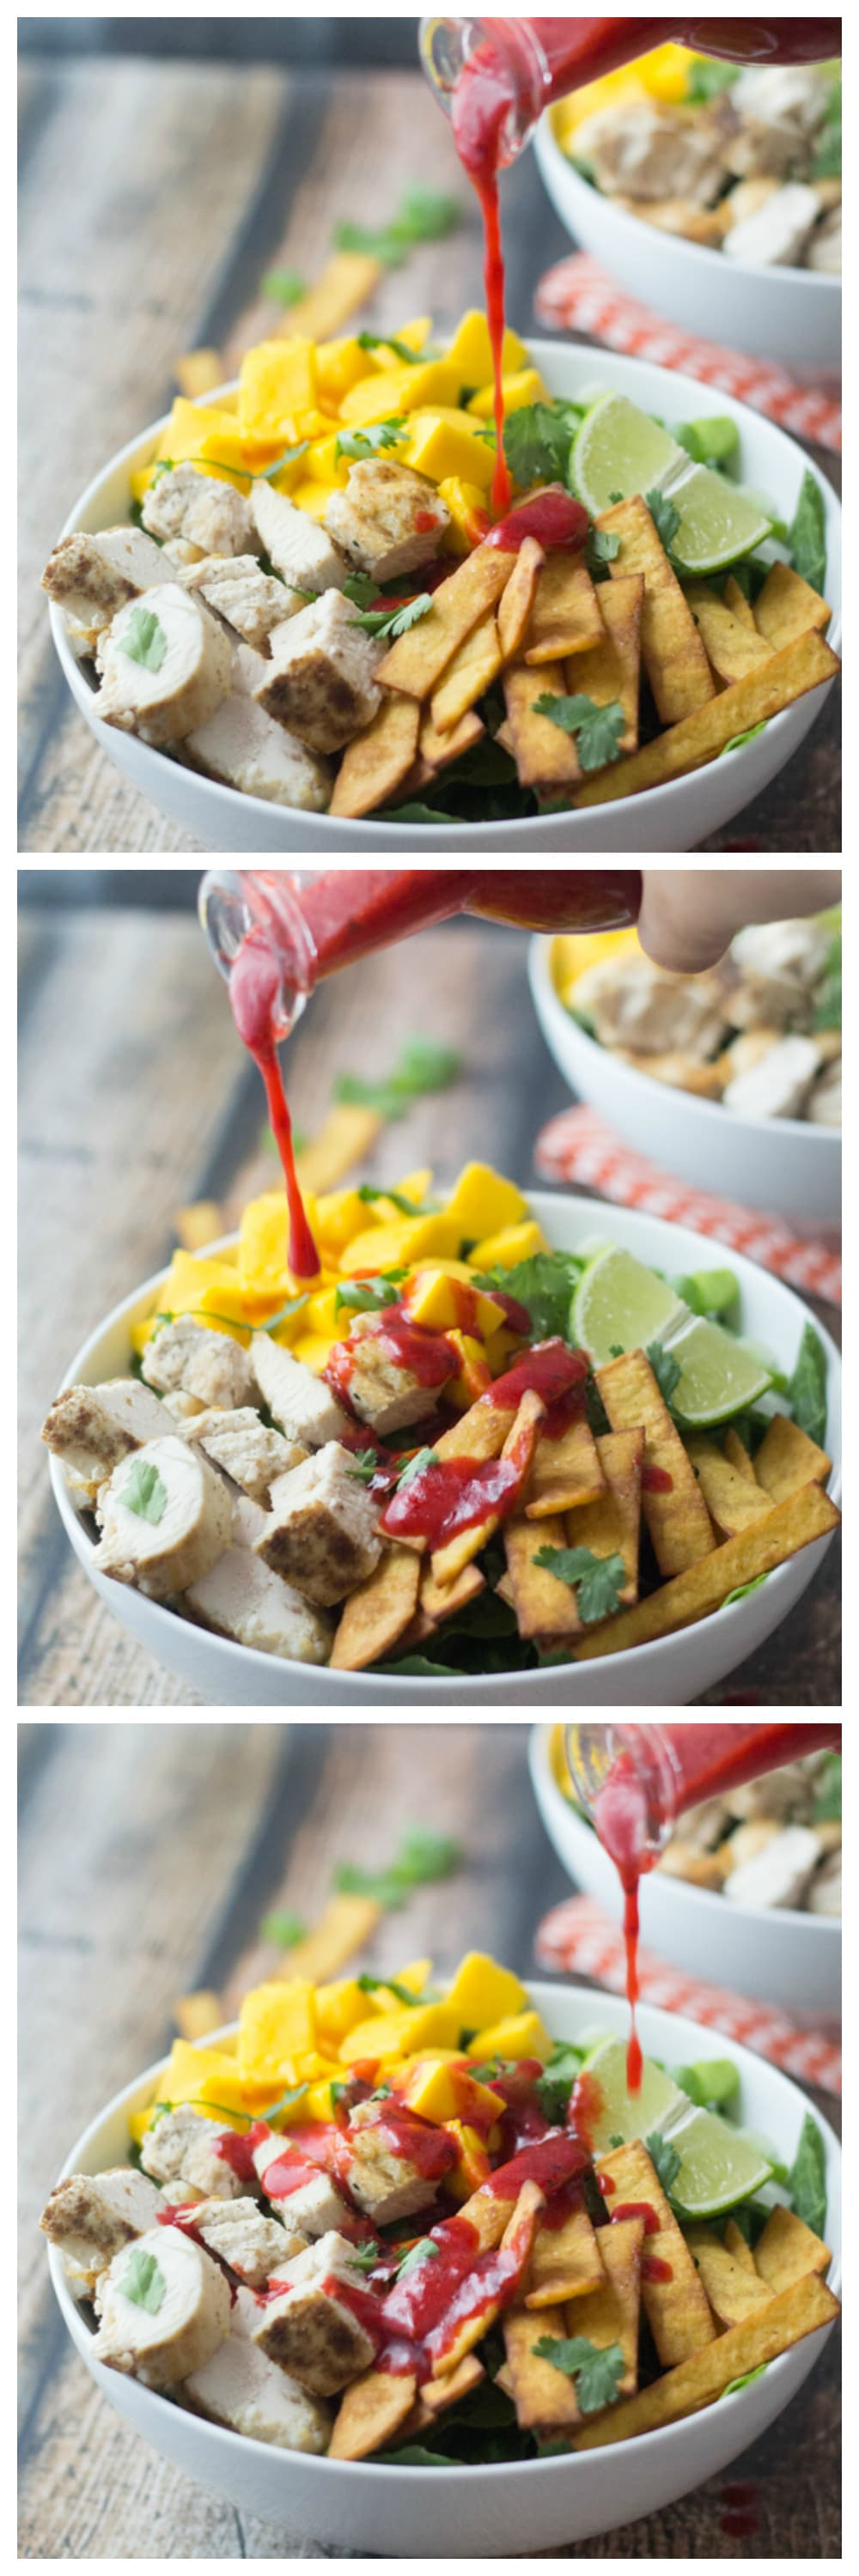 This Mexican Chicken Salad recipe with romaine lettuce, mangoes, green onions, tortilla strips, cilantro and seasoned chicken will delight you especially with the homemade Chipotle Raspberry Dressing!